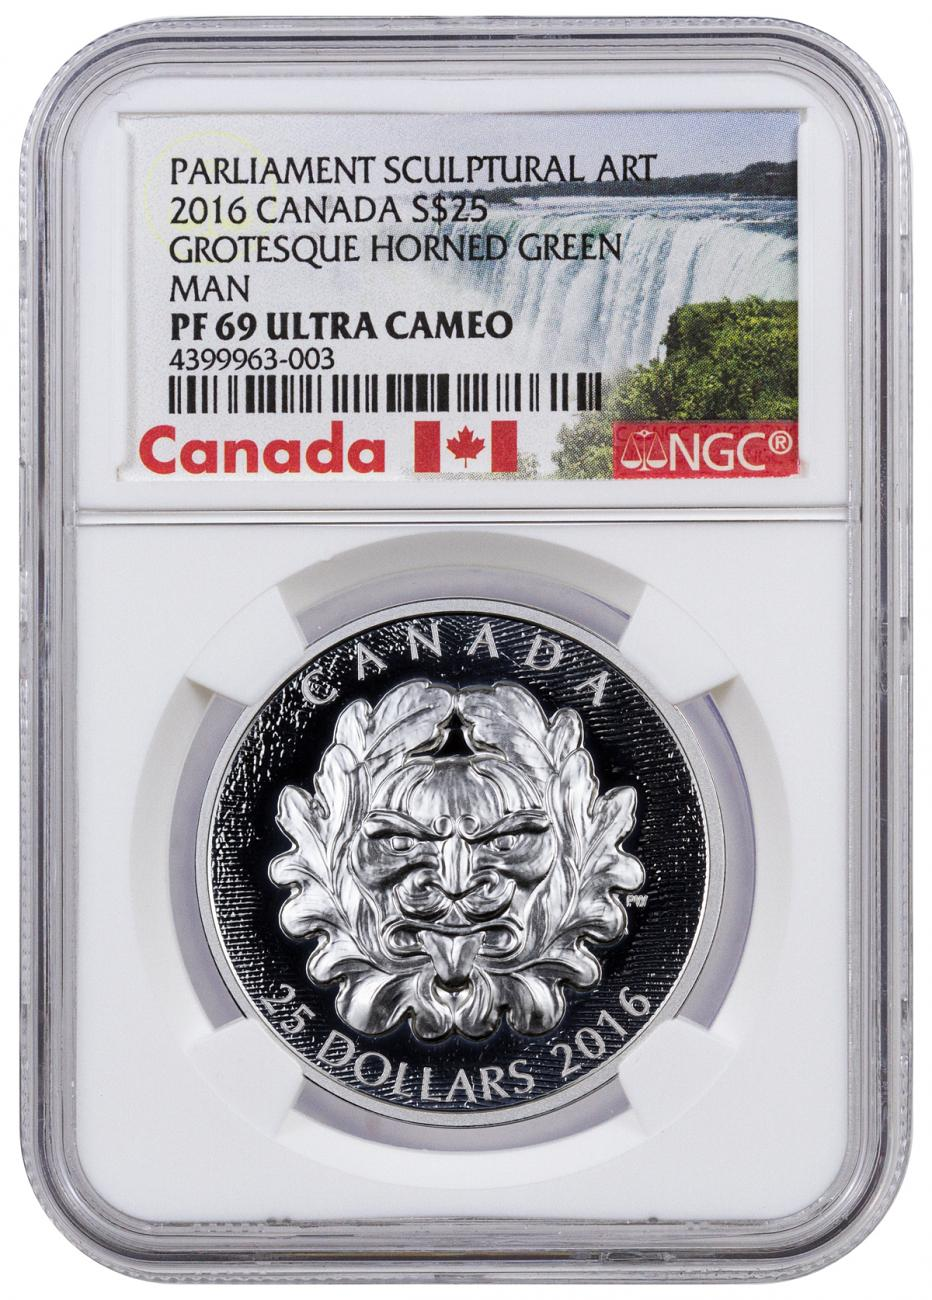 2016 Canada $25 1 oz. Ultra High Relief Proof Silver Sculptural Art of Parliament - Grotesque Horned Green Man - NGC PF69 UC (Exclusive Canada Label)